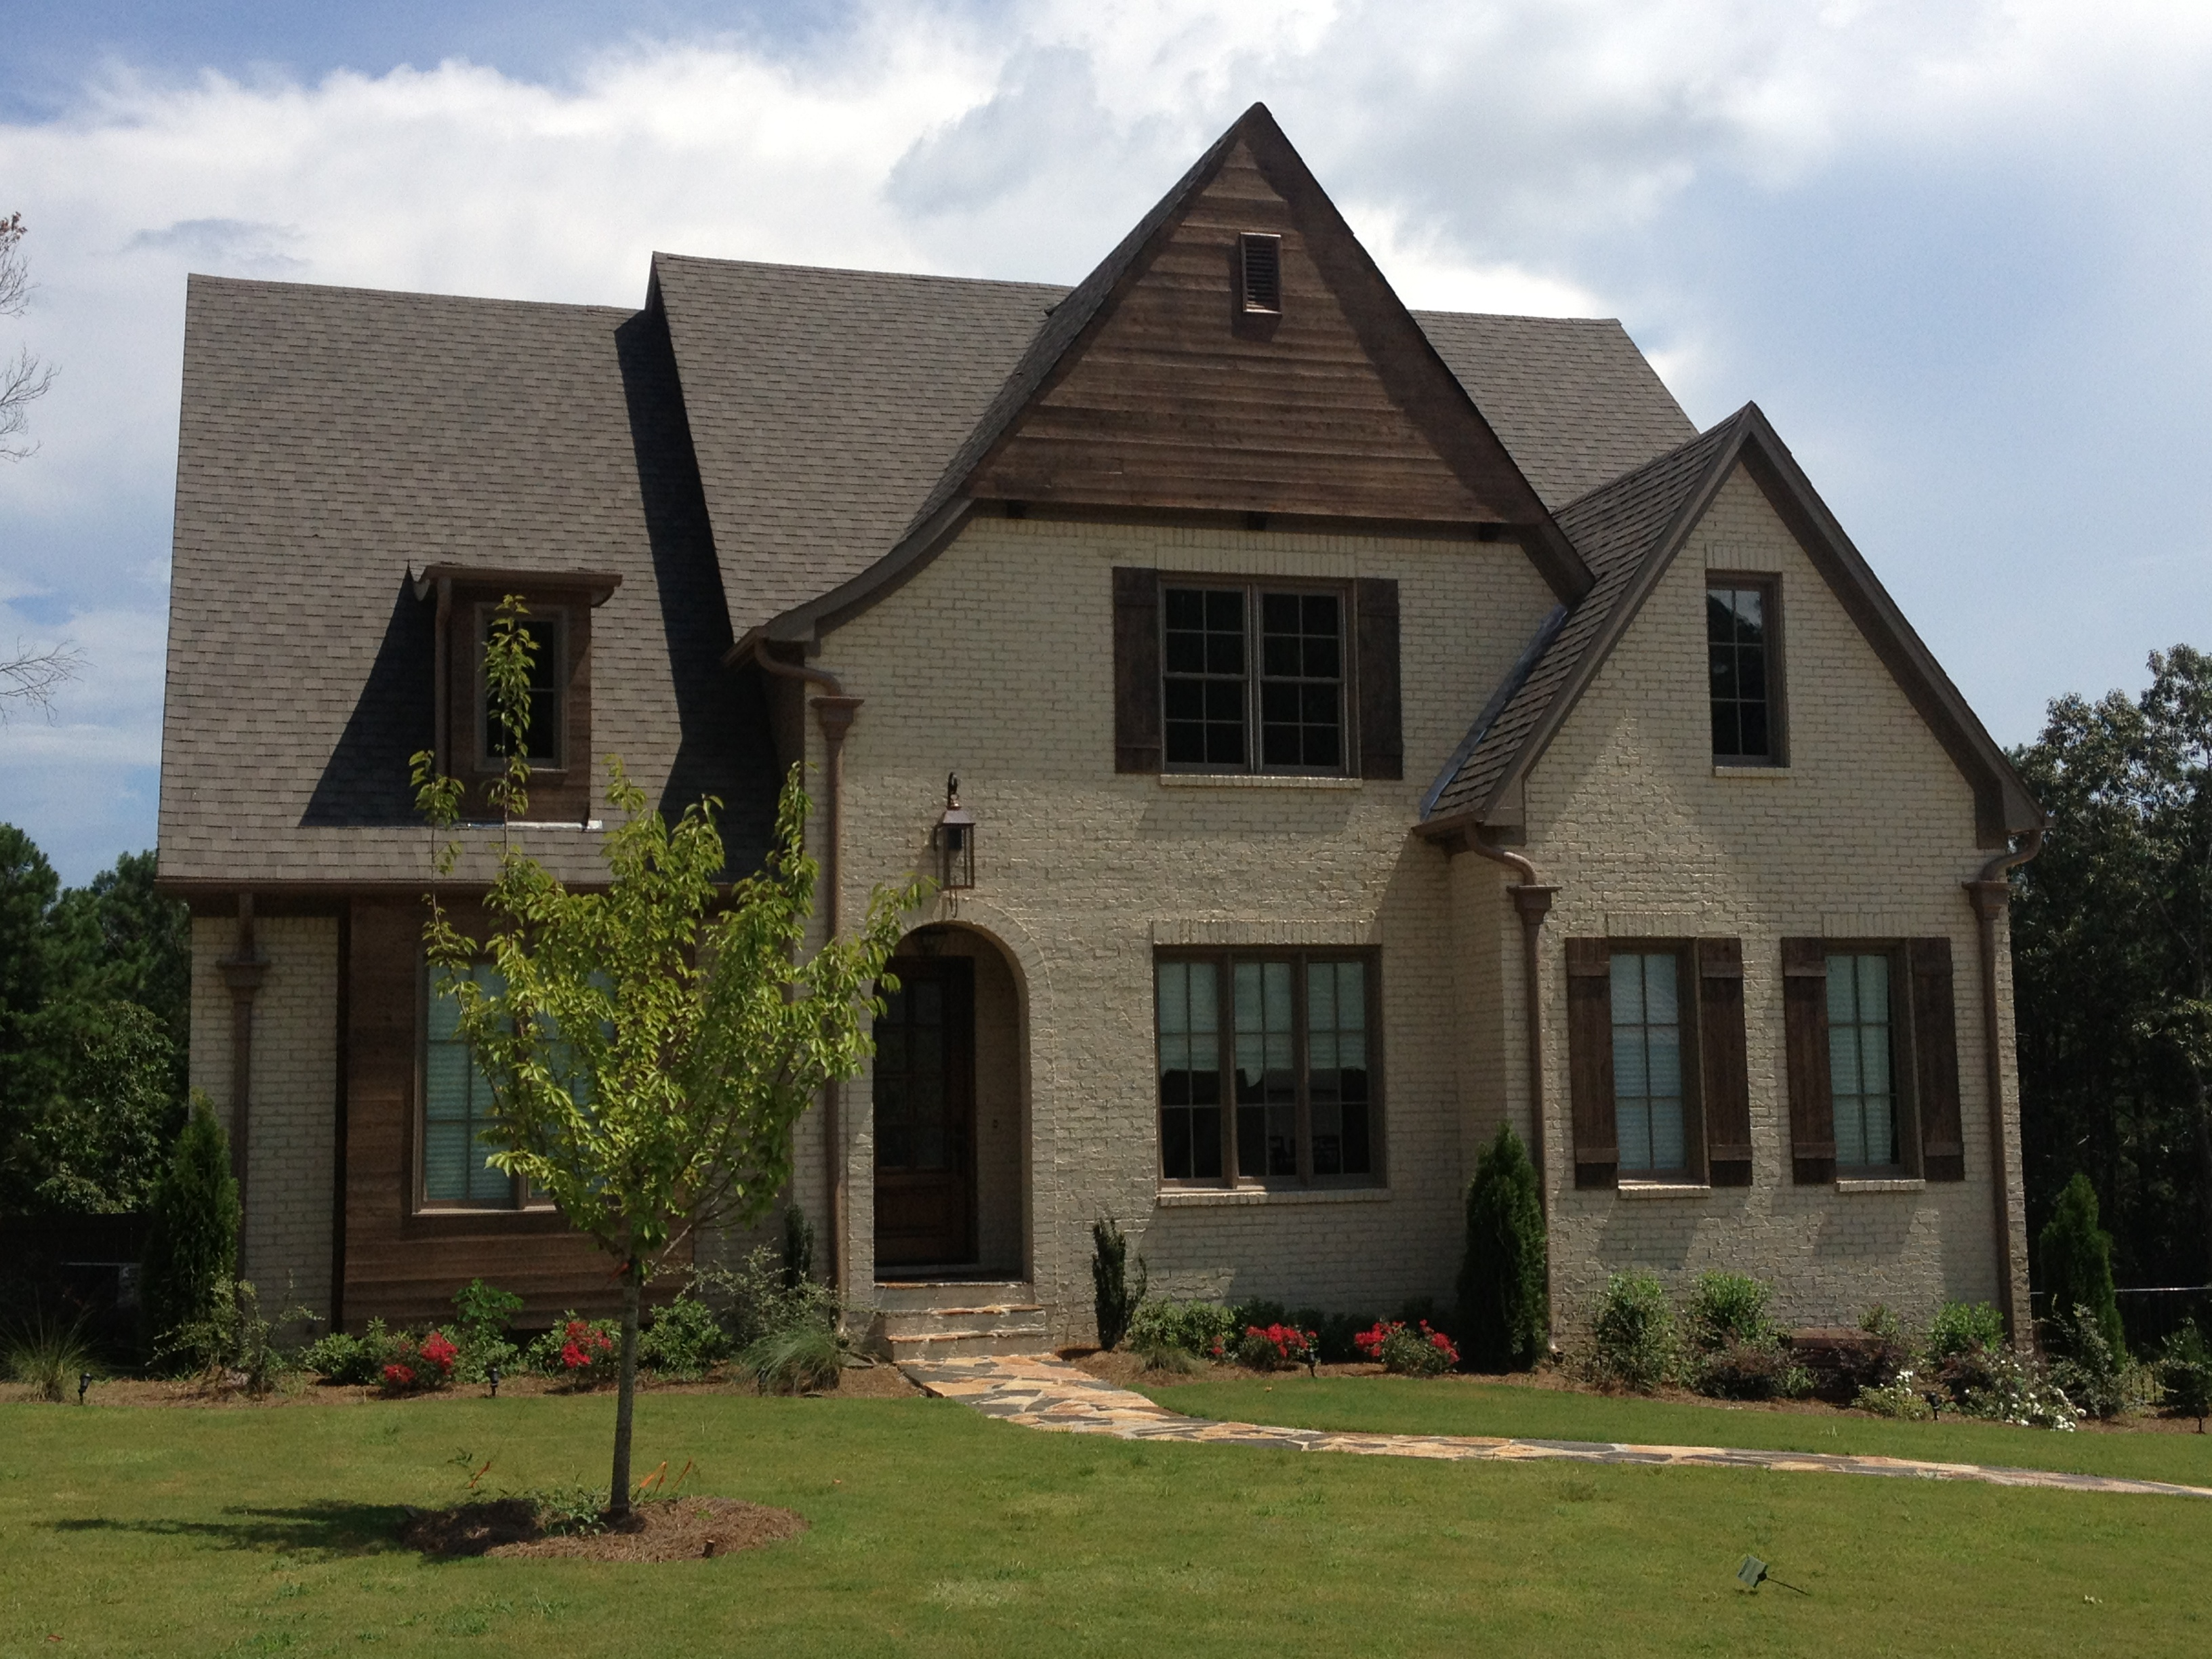 Kadco homes the best custom home builders in birmingham Home builders com